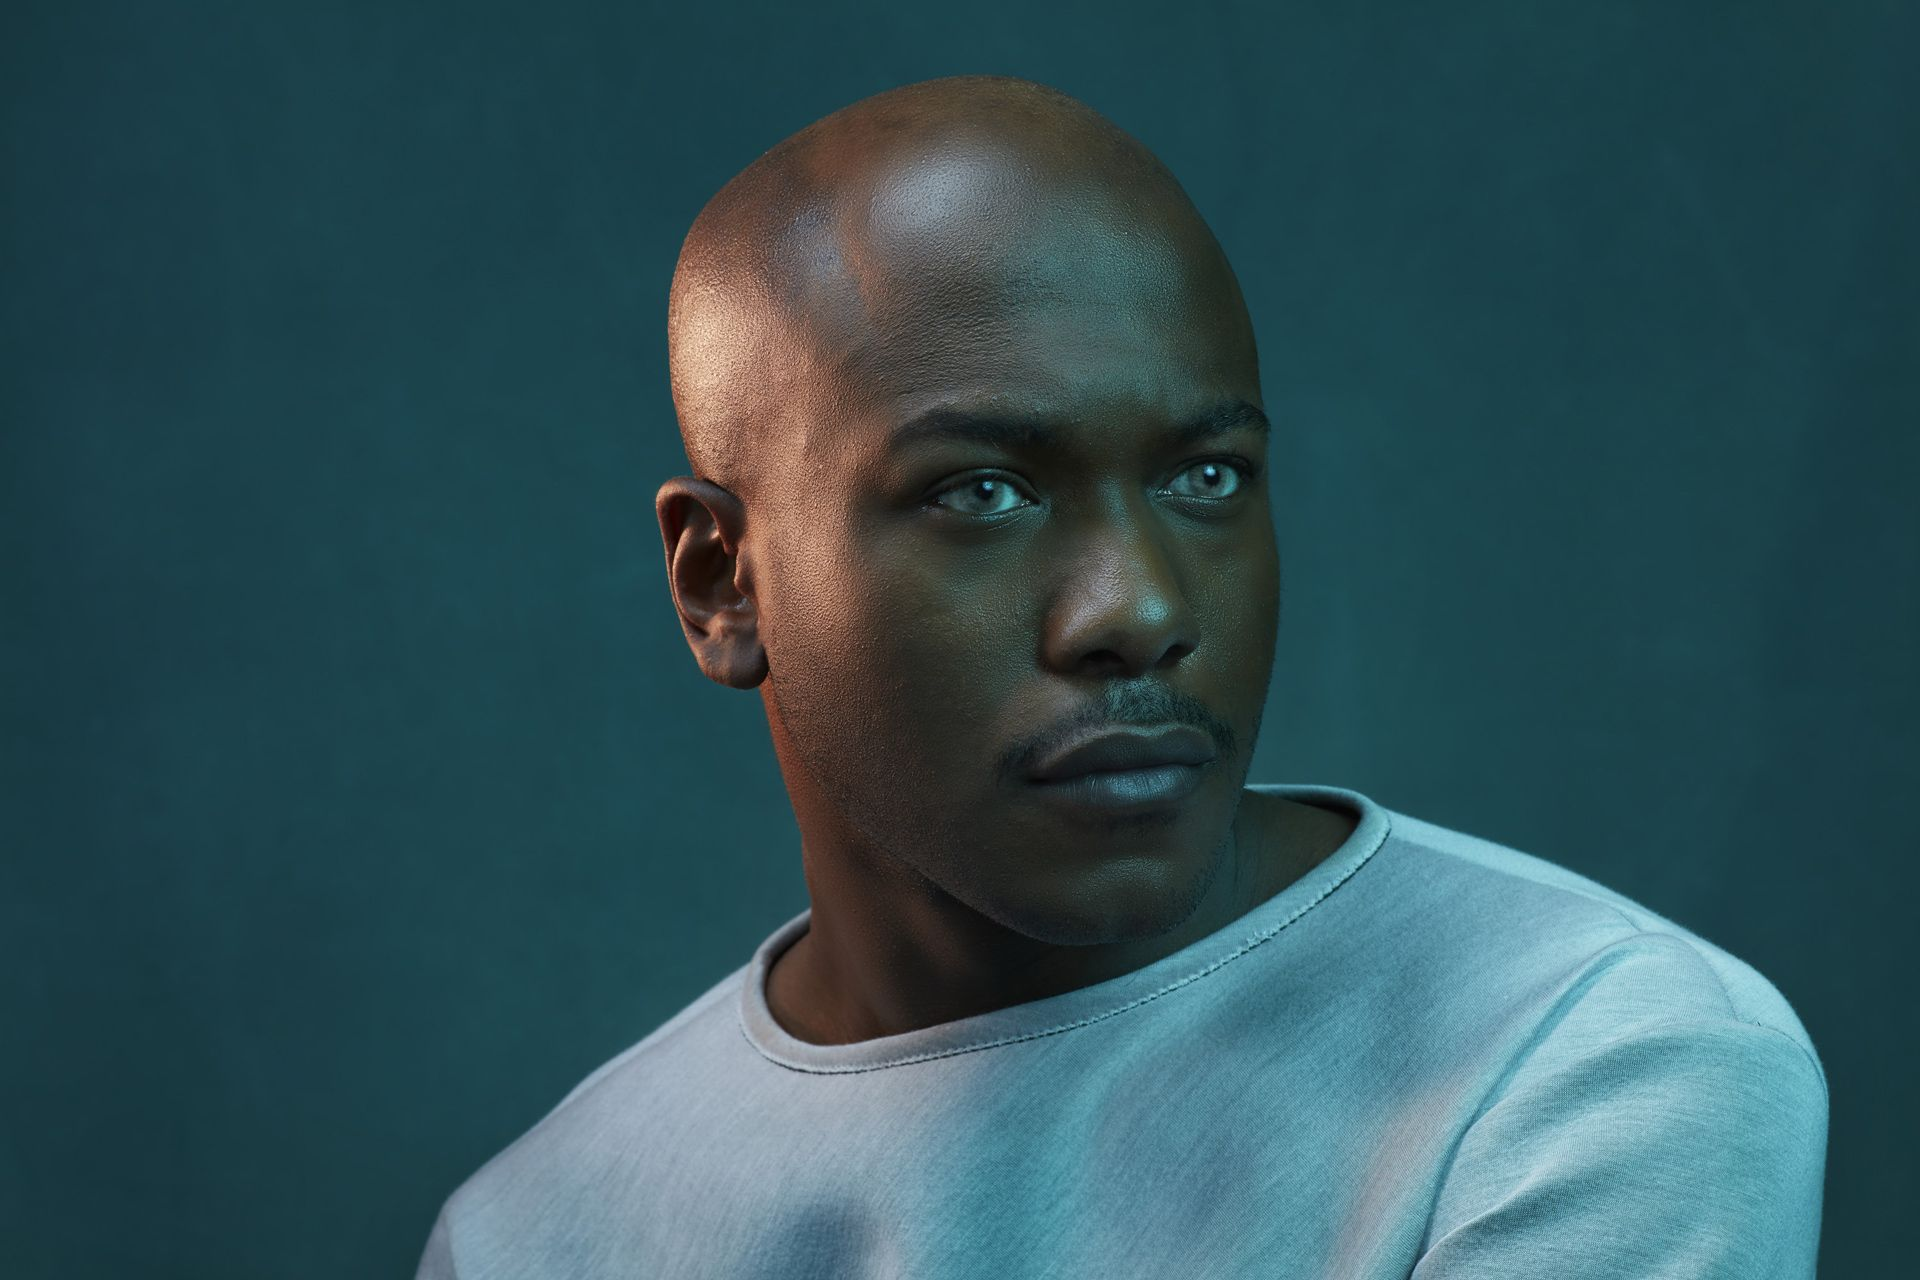 portrait of black man bald wearing white sweater looking pensive in colored lighting on dark green background by Simon Duhamel for creative project Introspect